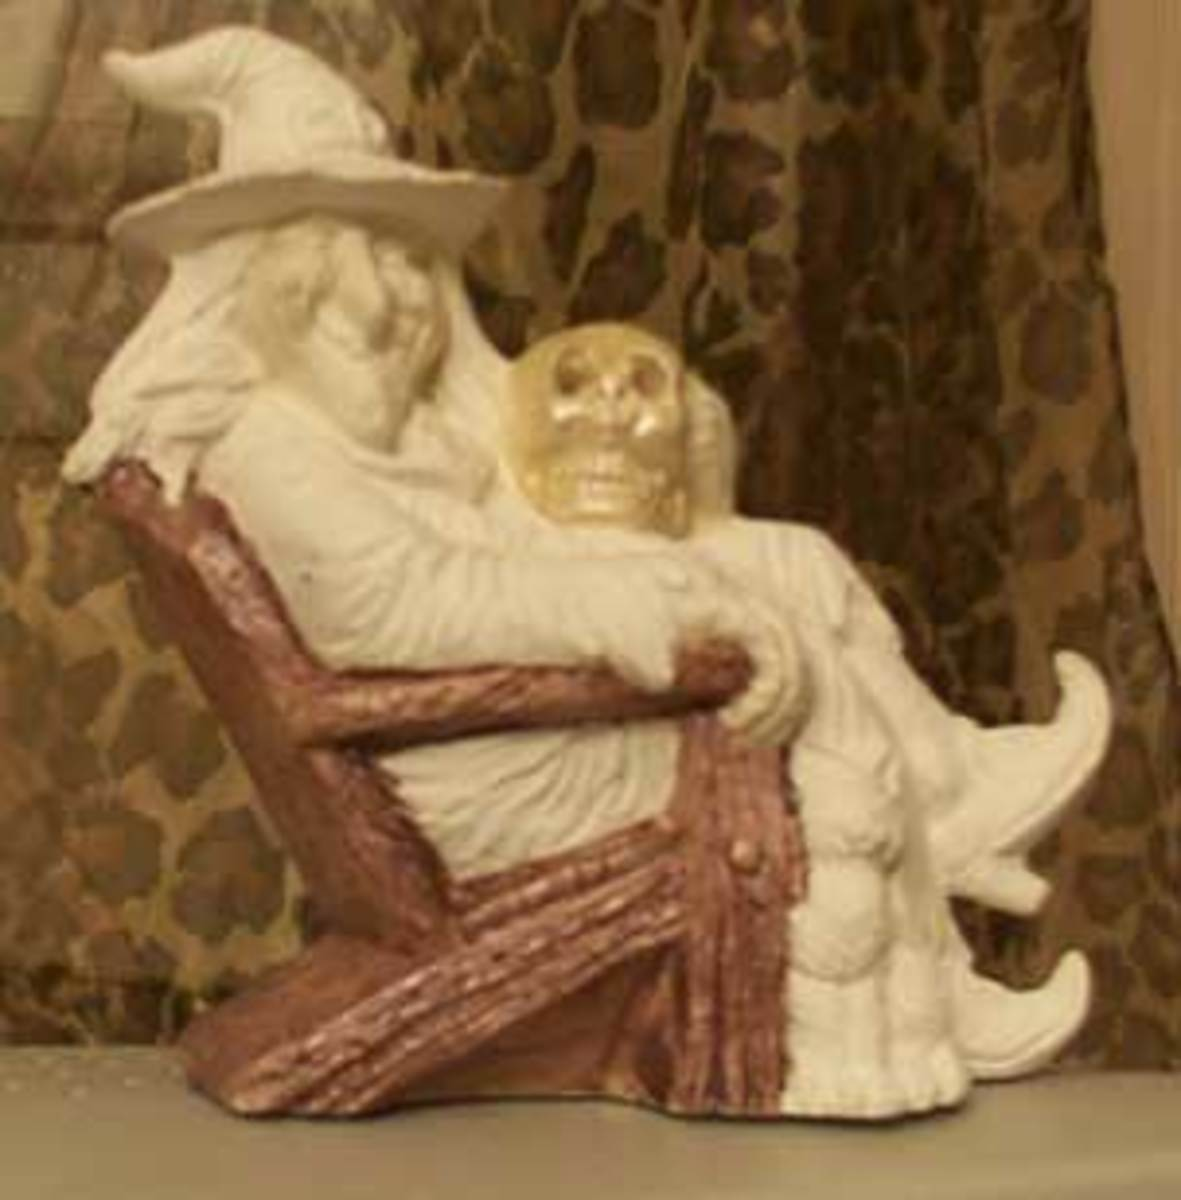 I painted the chair first with a flat coat for later antiquing and dry brush. I painted the skull with pearl white, hoping to get a crystal effect--hard to do with ceramic.